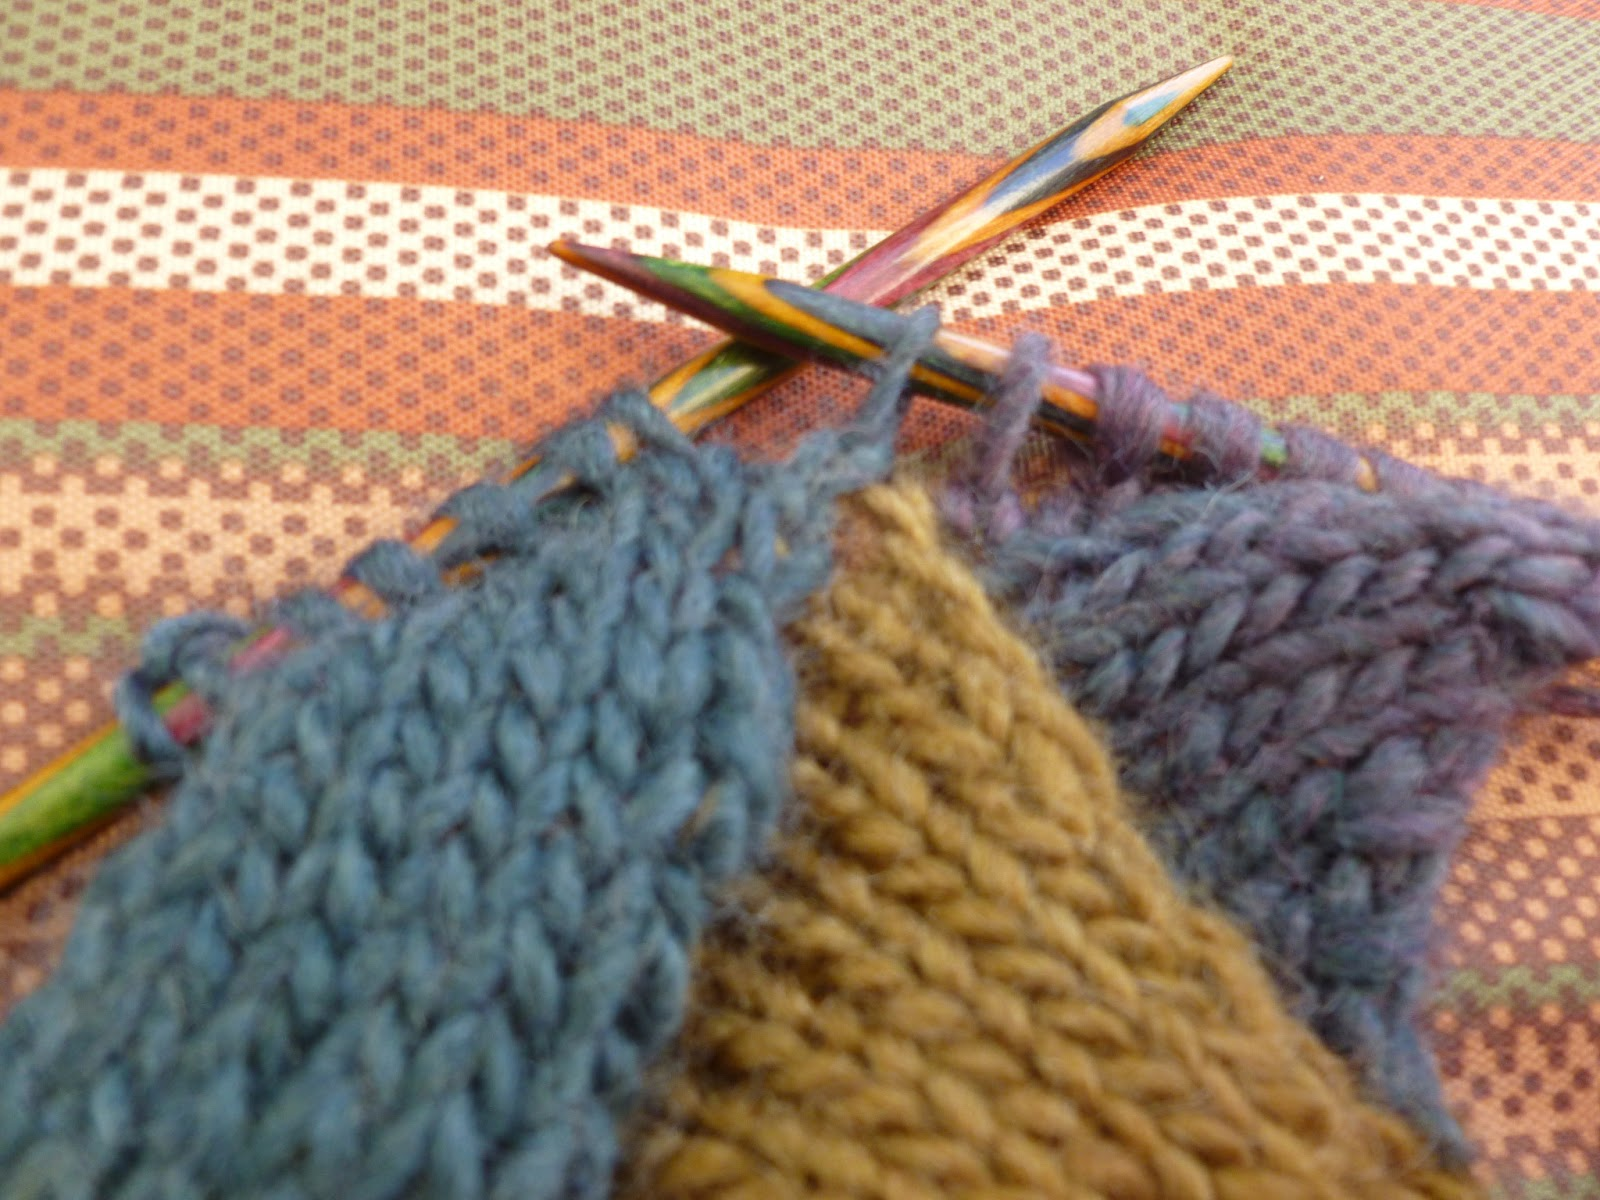 Picking Up Stitches Entrelac Knitting : Lilly My Cat: ENTRELAC TUTORIAL and HAPPY NEW YEAR WISHES